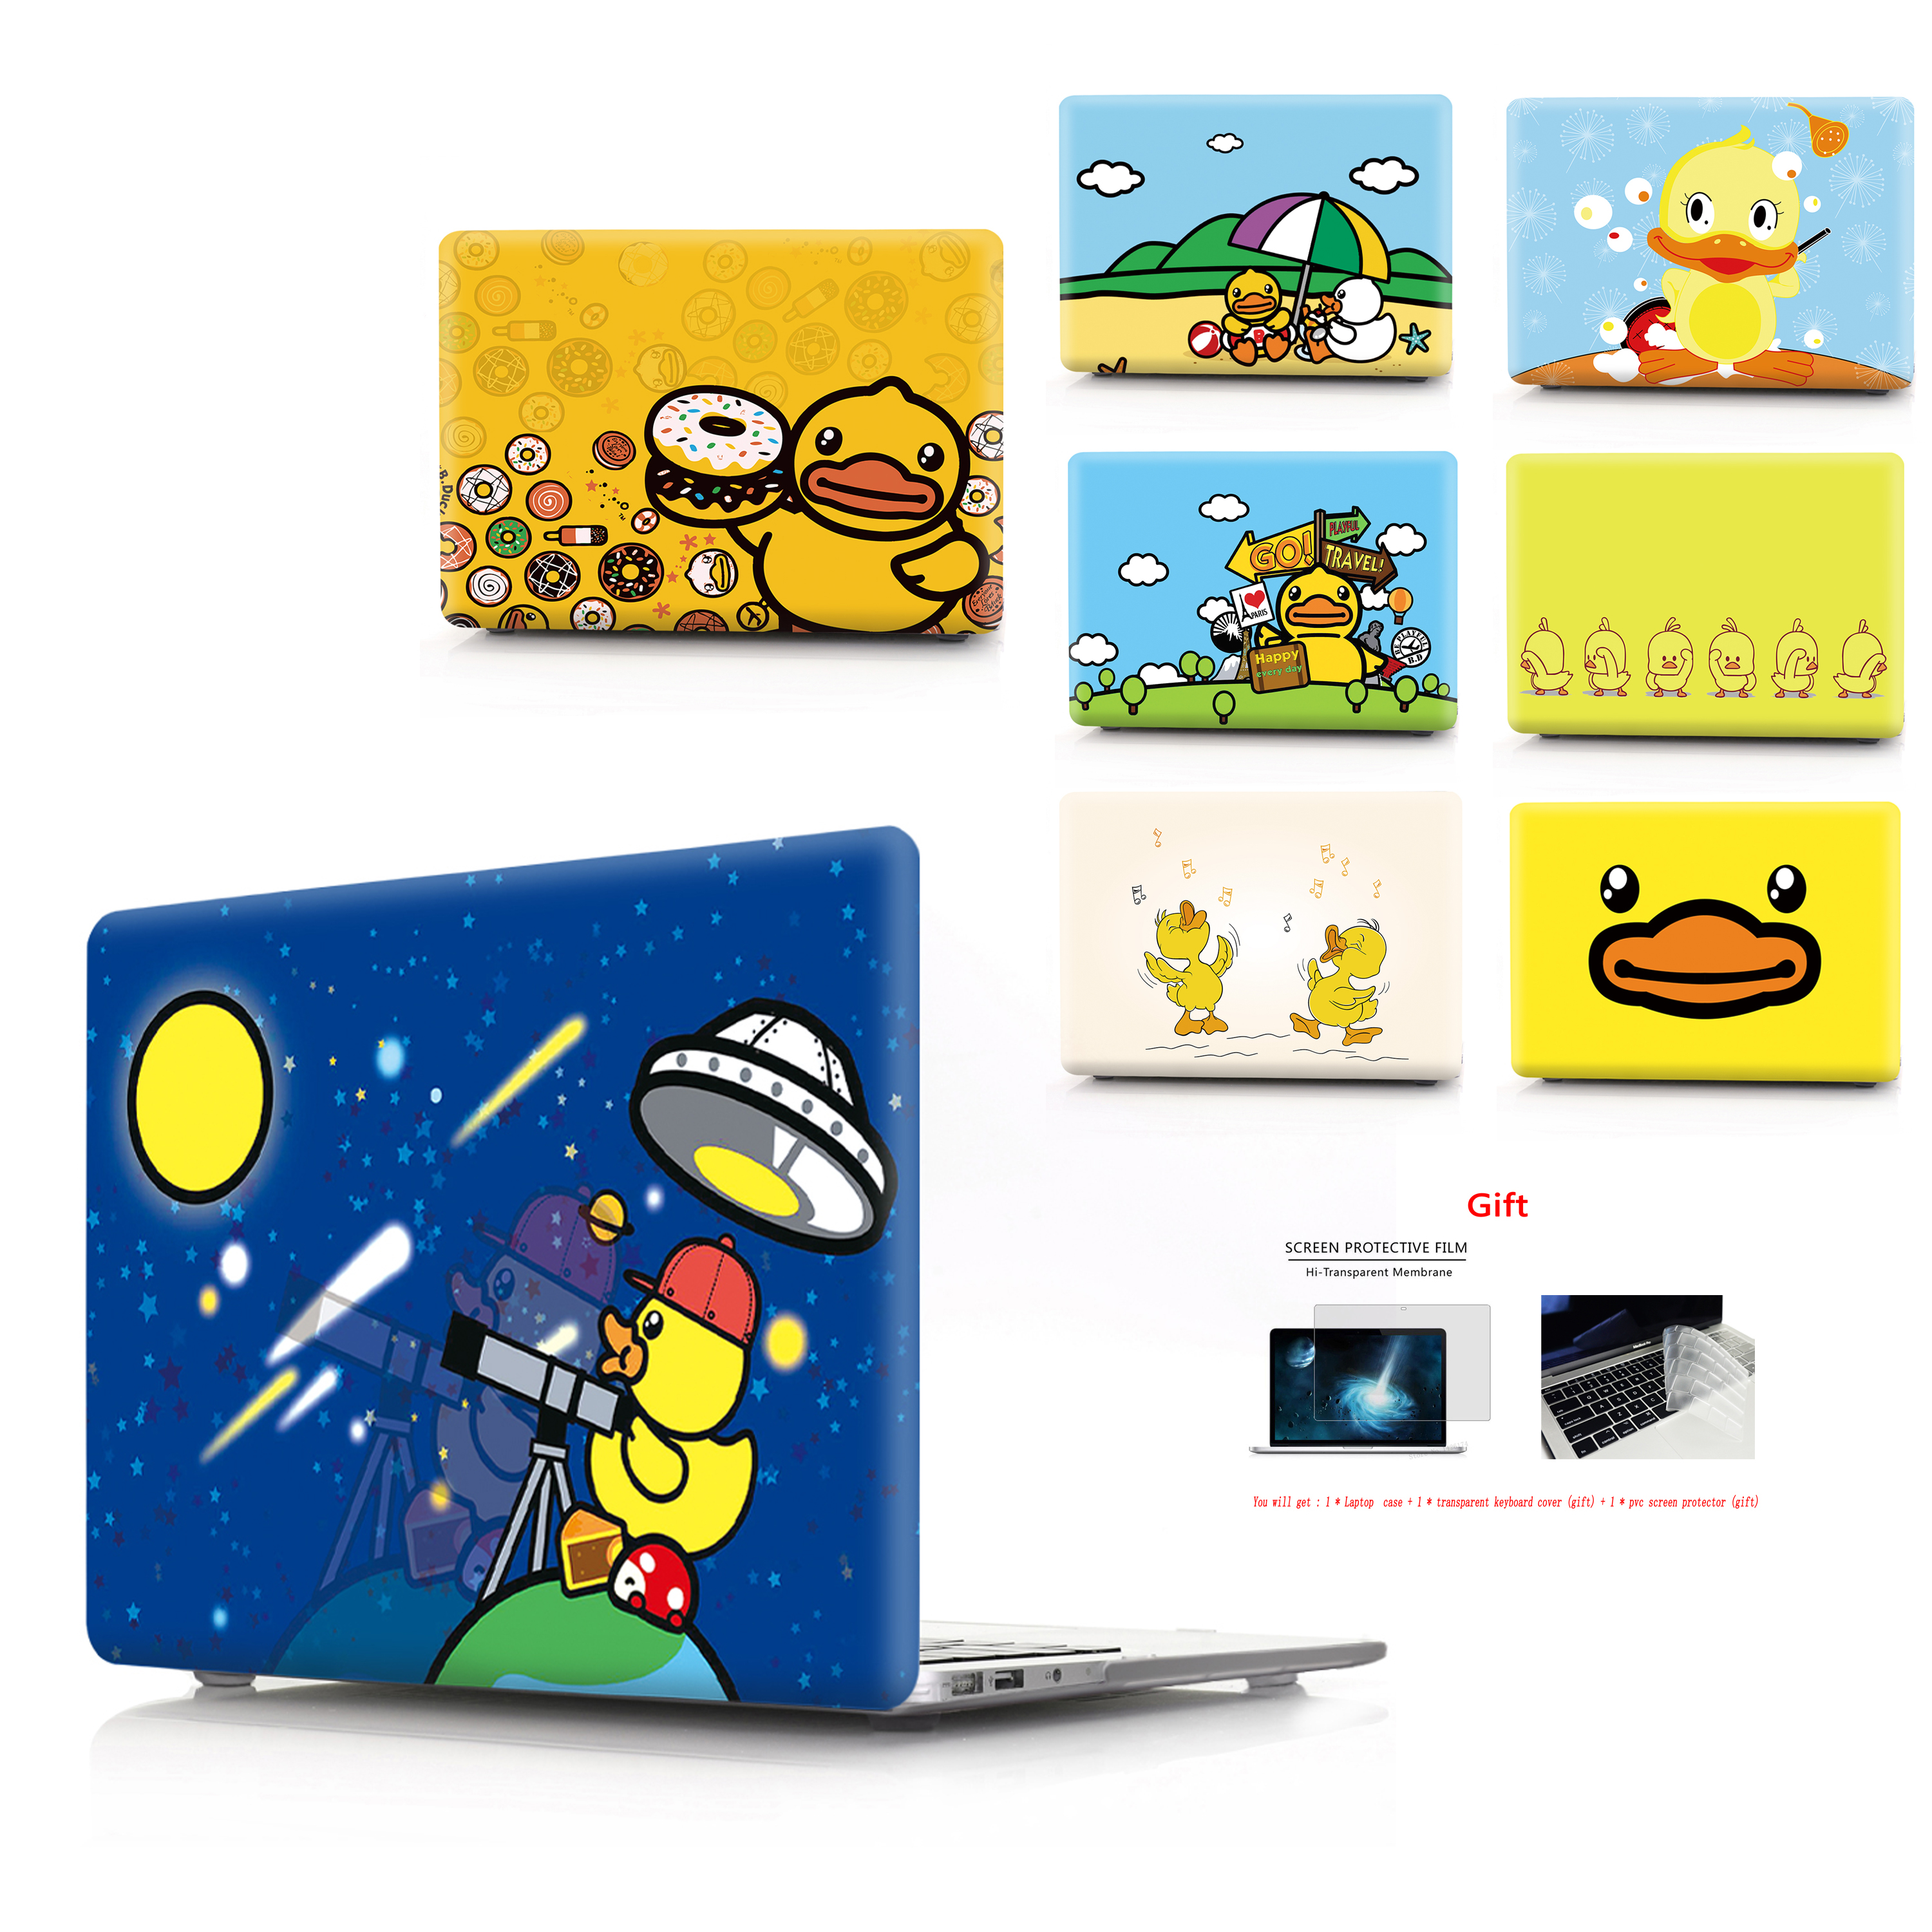 Yellow duck image shell Case For MacBook Air 13 Retina Pro 11 12 13 15 For MacBook New Pro 13 15 New Air 13 with Touch Bar in Laptop Bags Cases from Computer Office